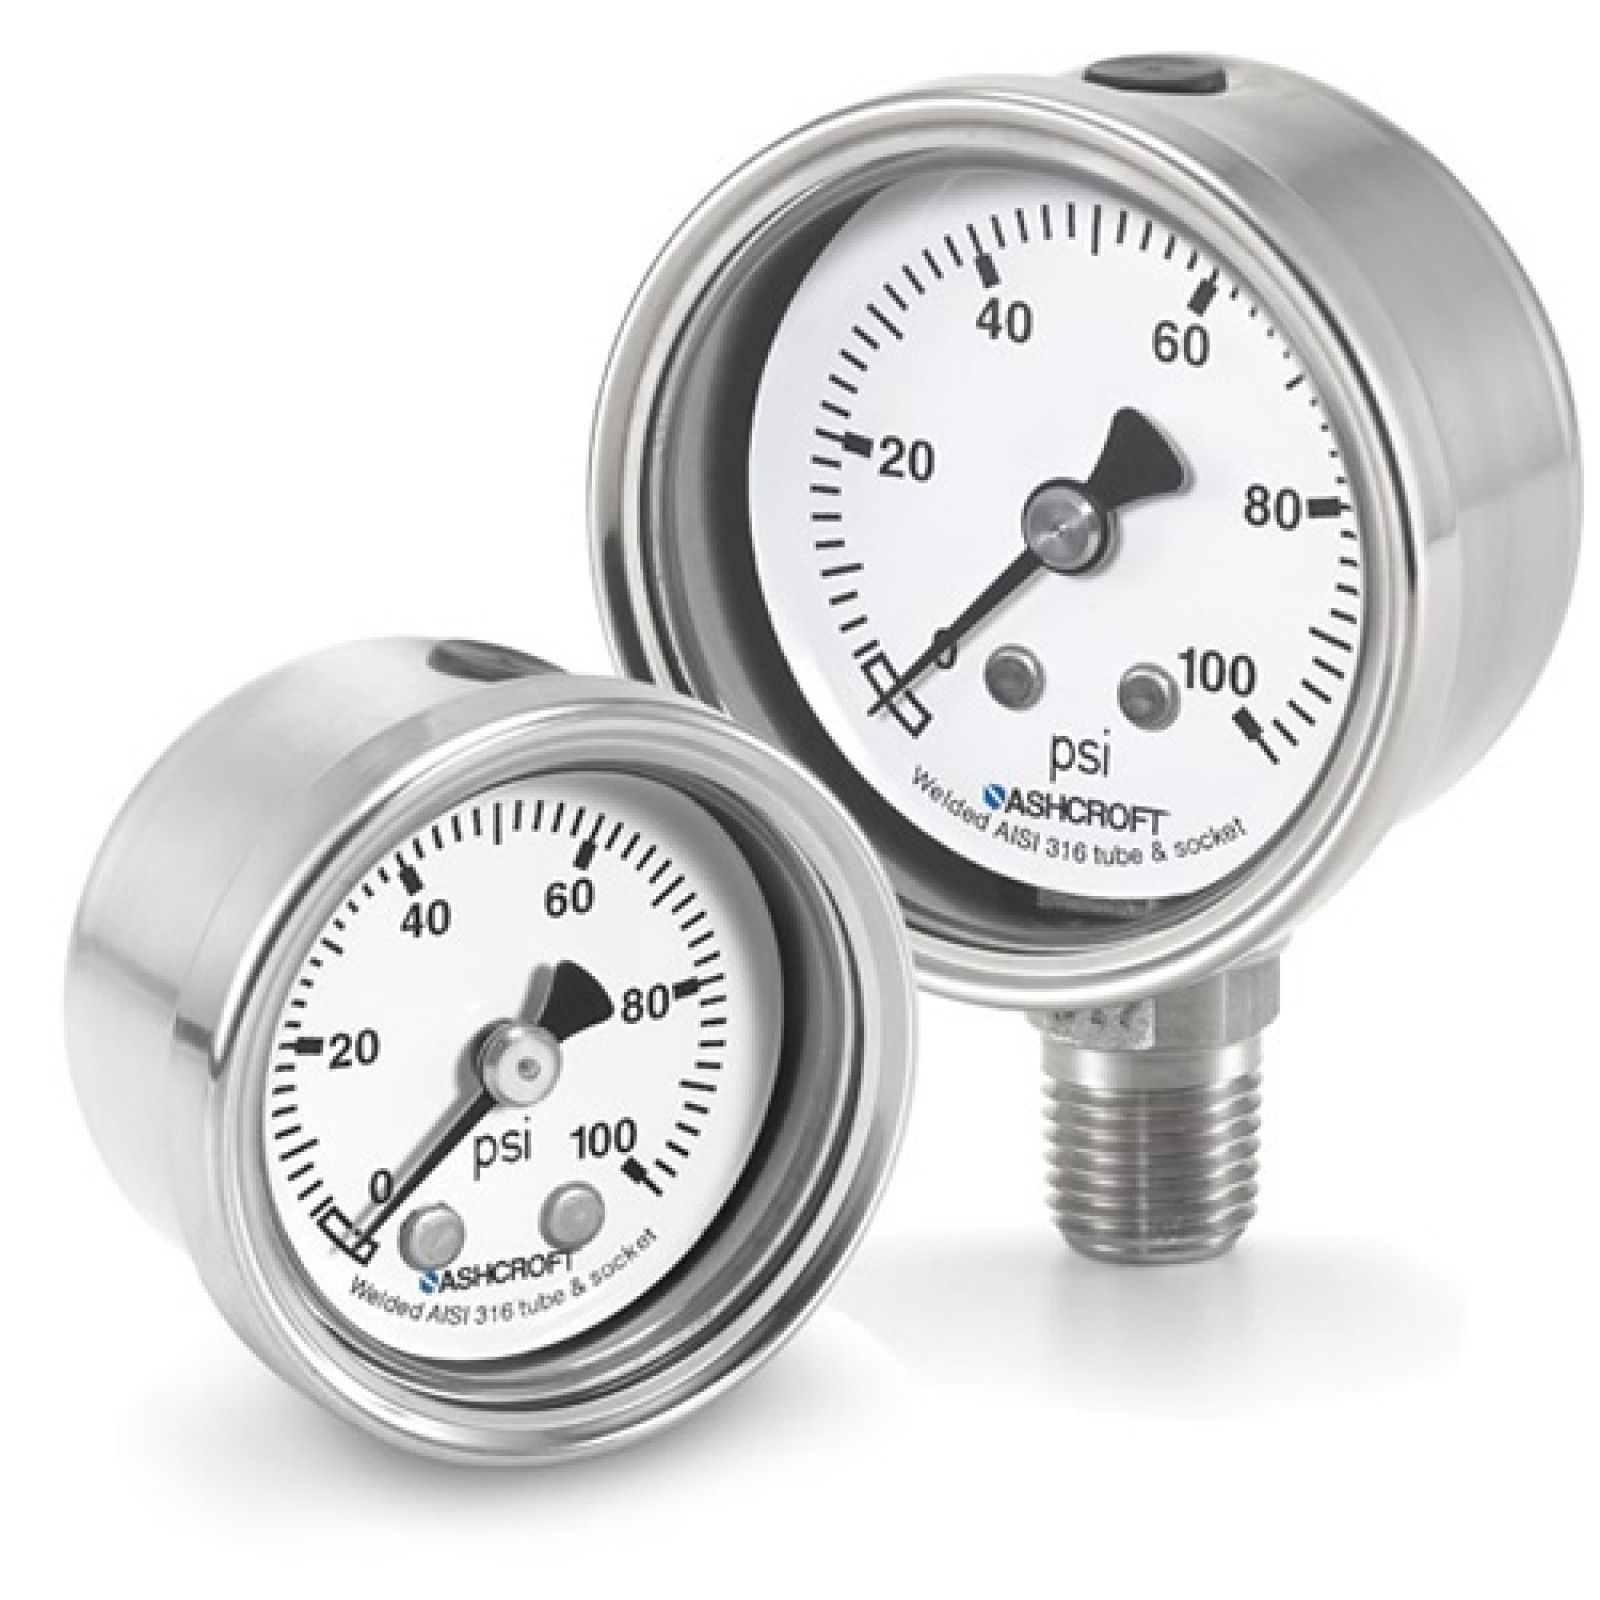 "63 1008S 02B XLL 1500#/KP - Pressure Gauge, 63mm stainless 1/4"" NPT Back conn & Case, Plus Performance, 0/1500 psi"